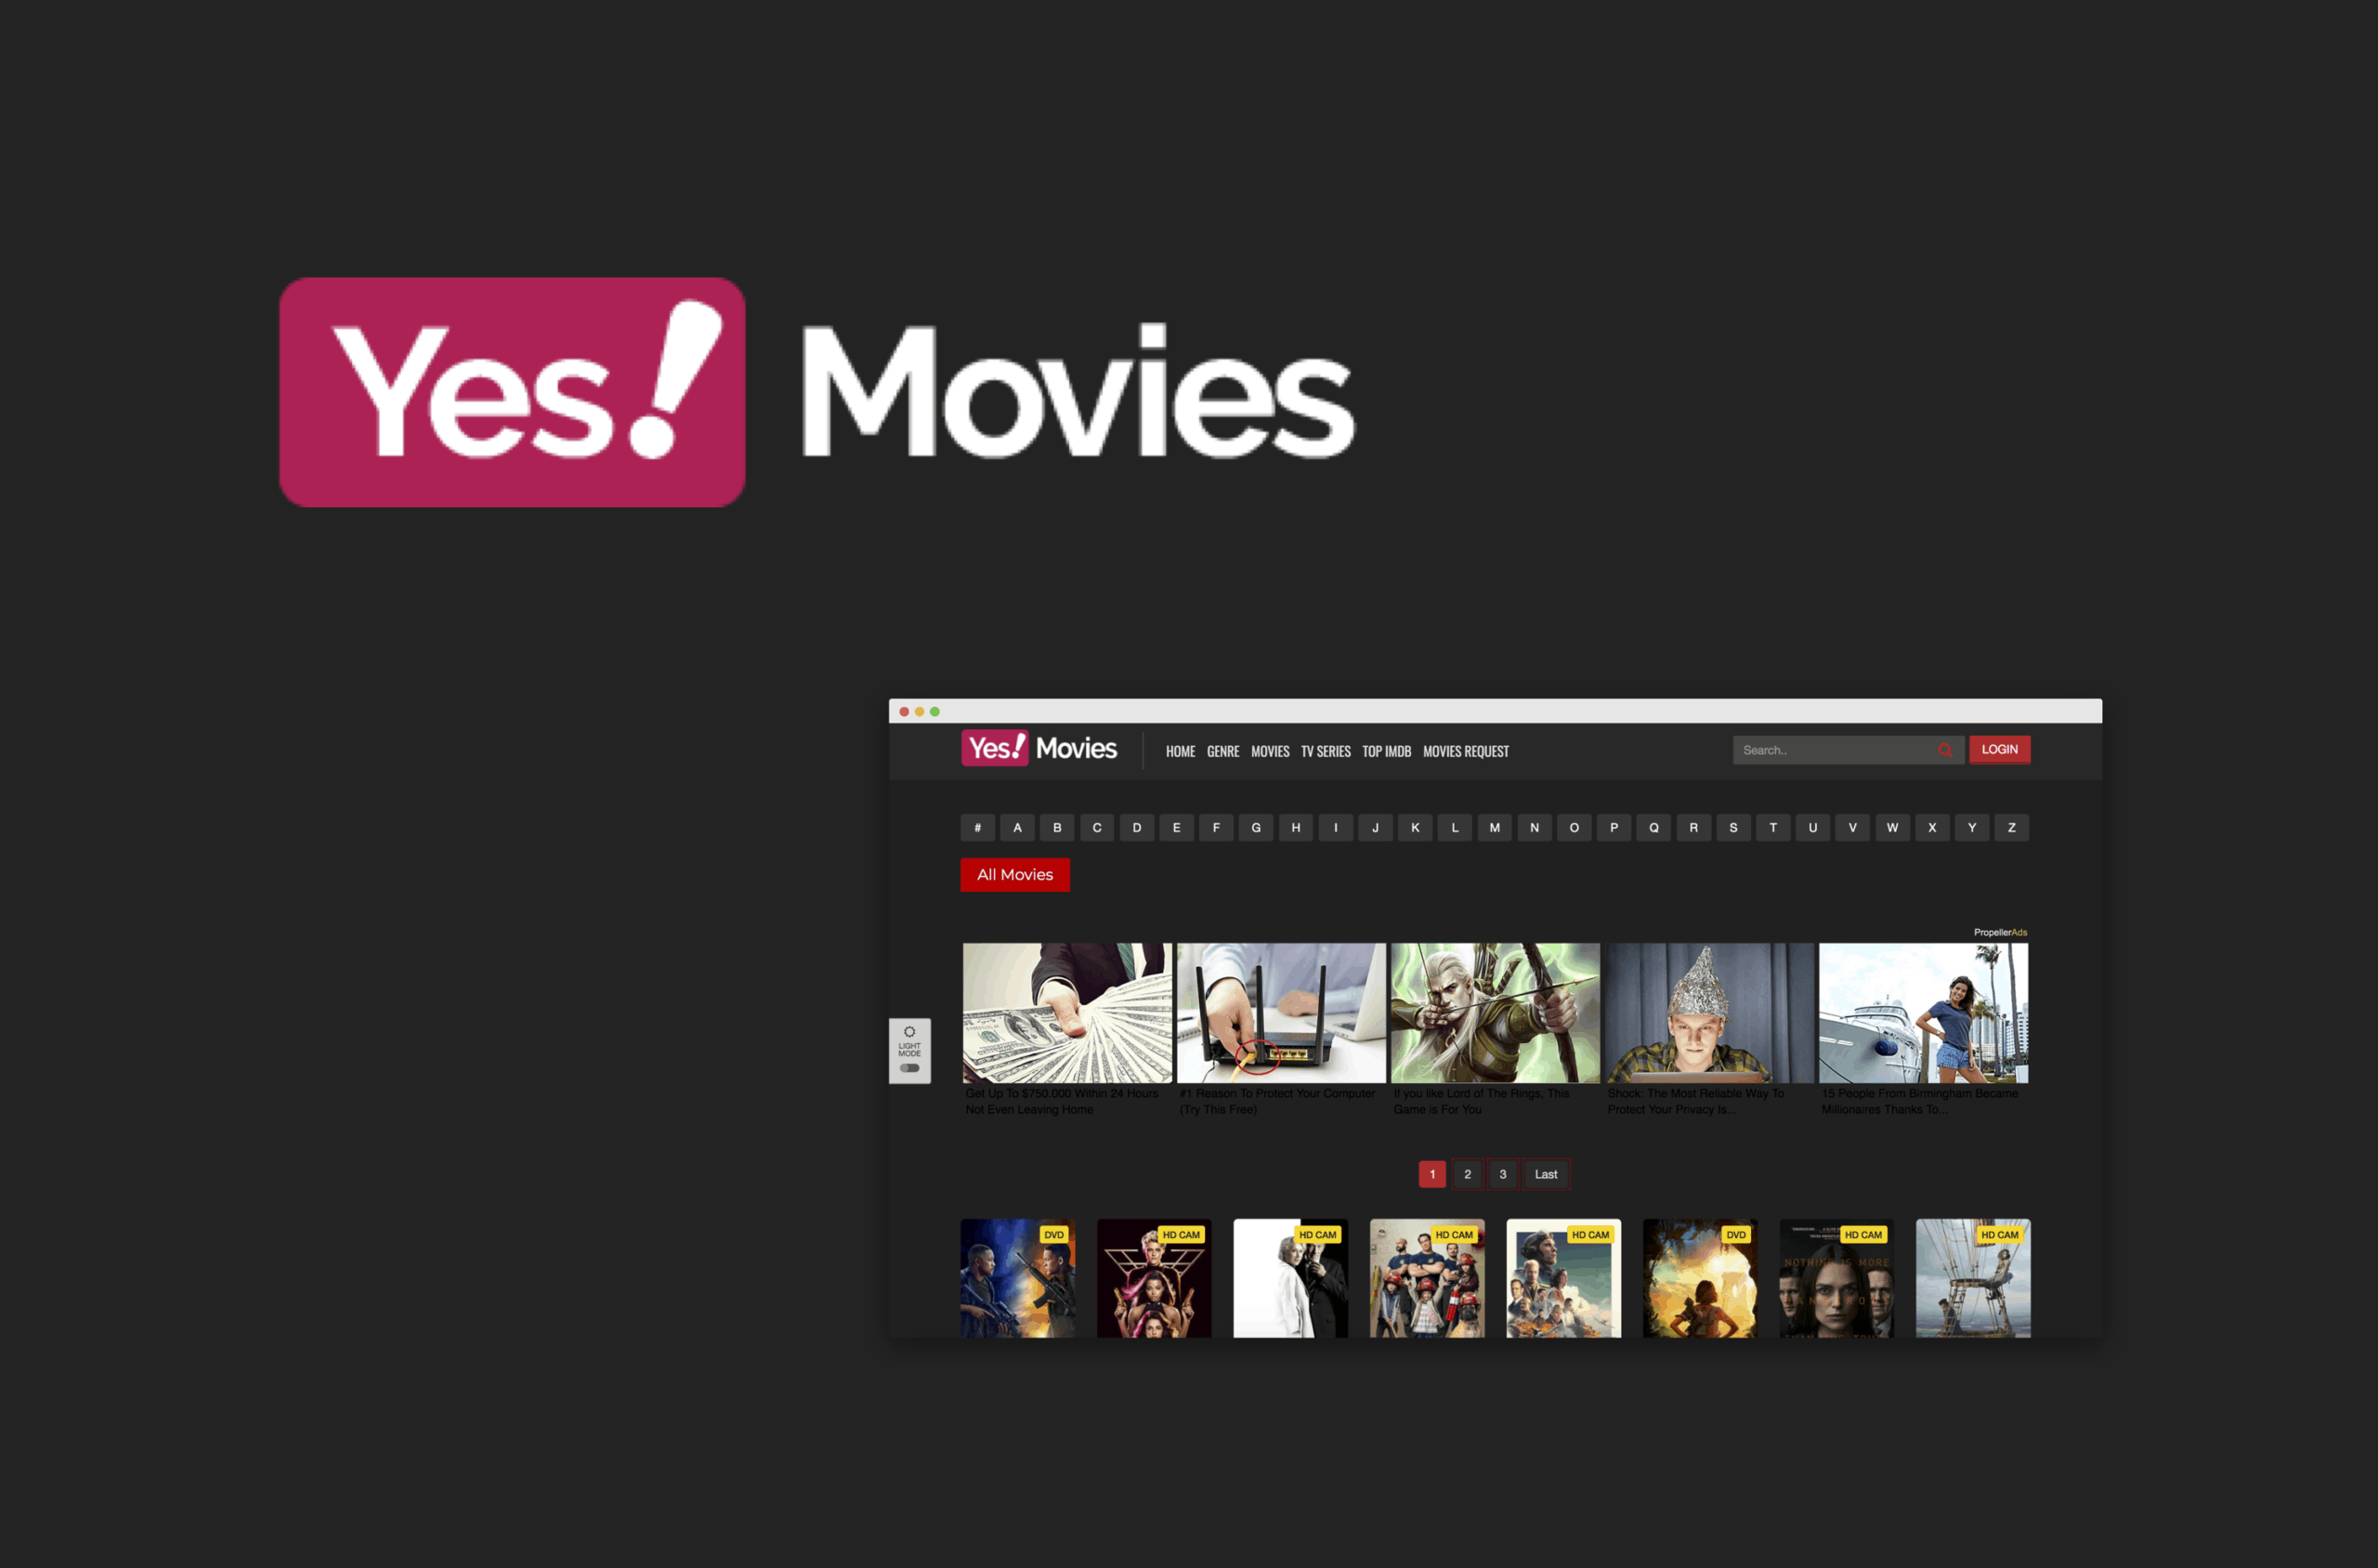 YesMovies – Some Major Categories of Movies